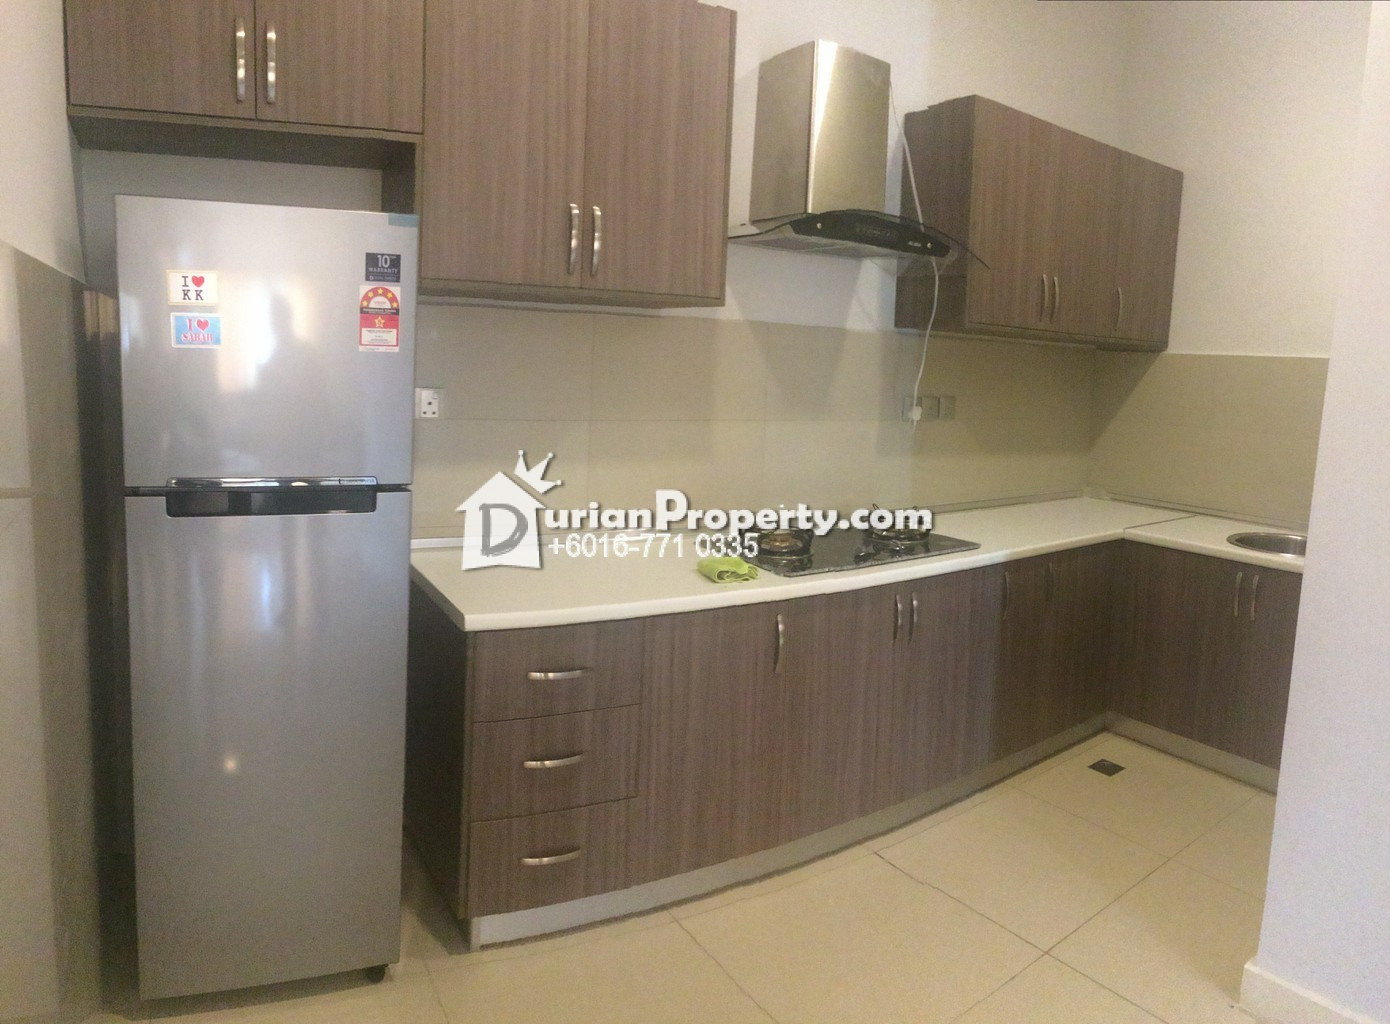 Condo For Rent At The Loft Kk Times Square Kota Kinabalu For Rm 3 000 By Richard Tokuzip